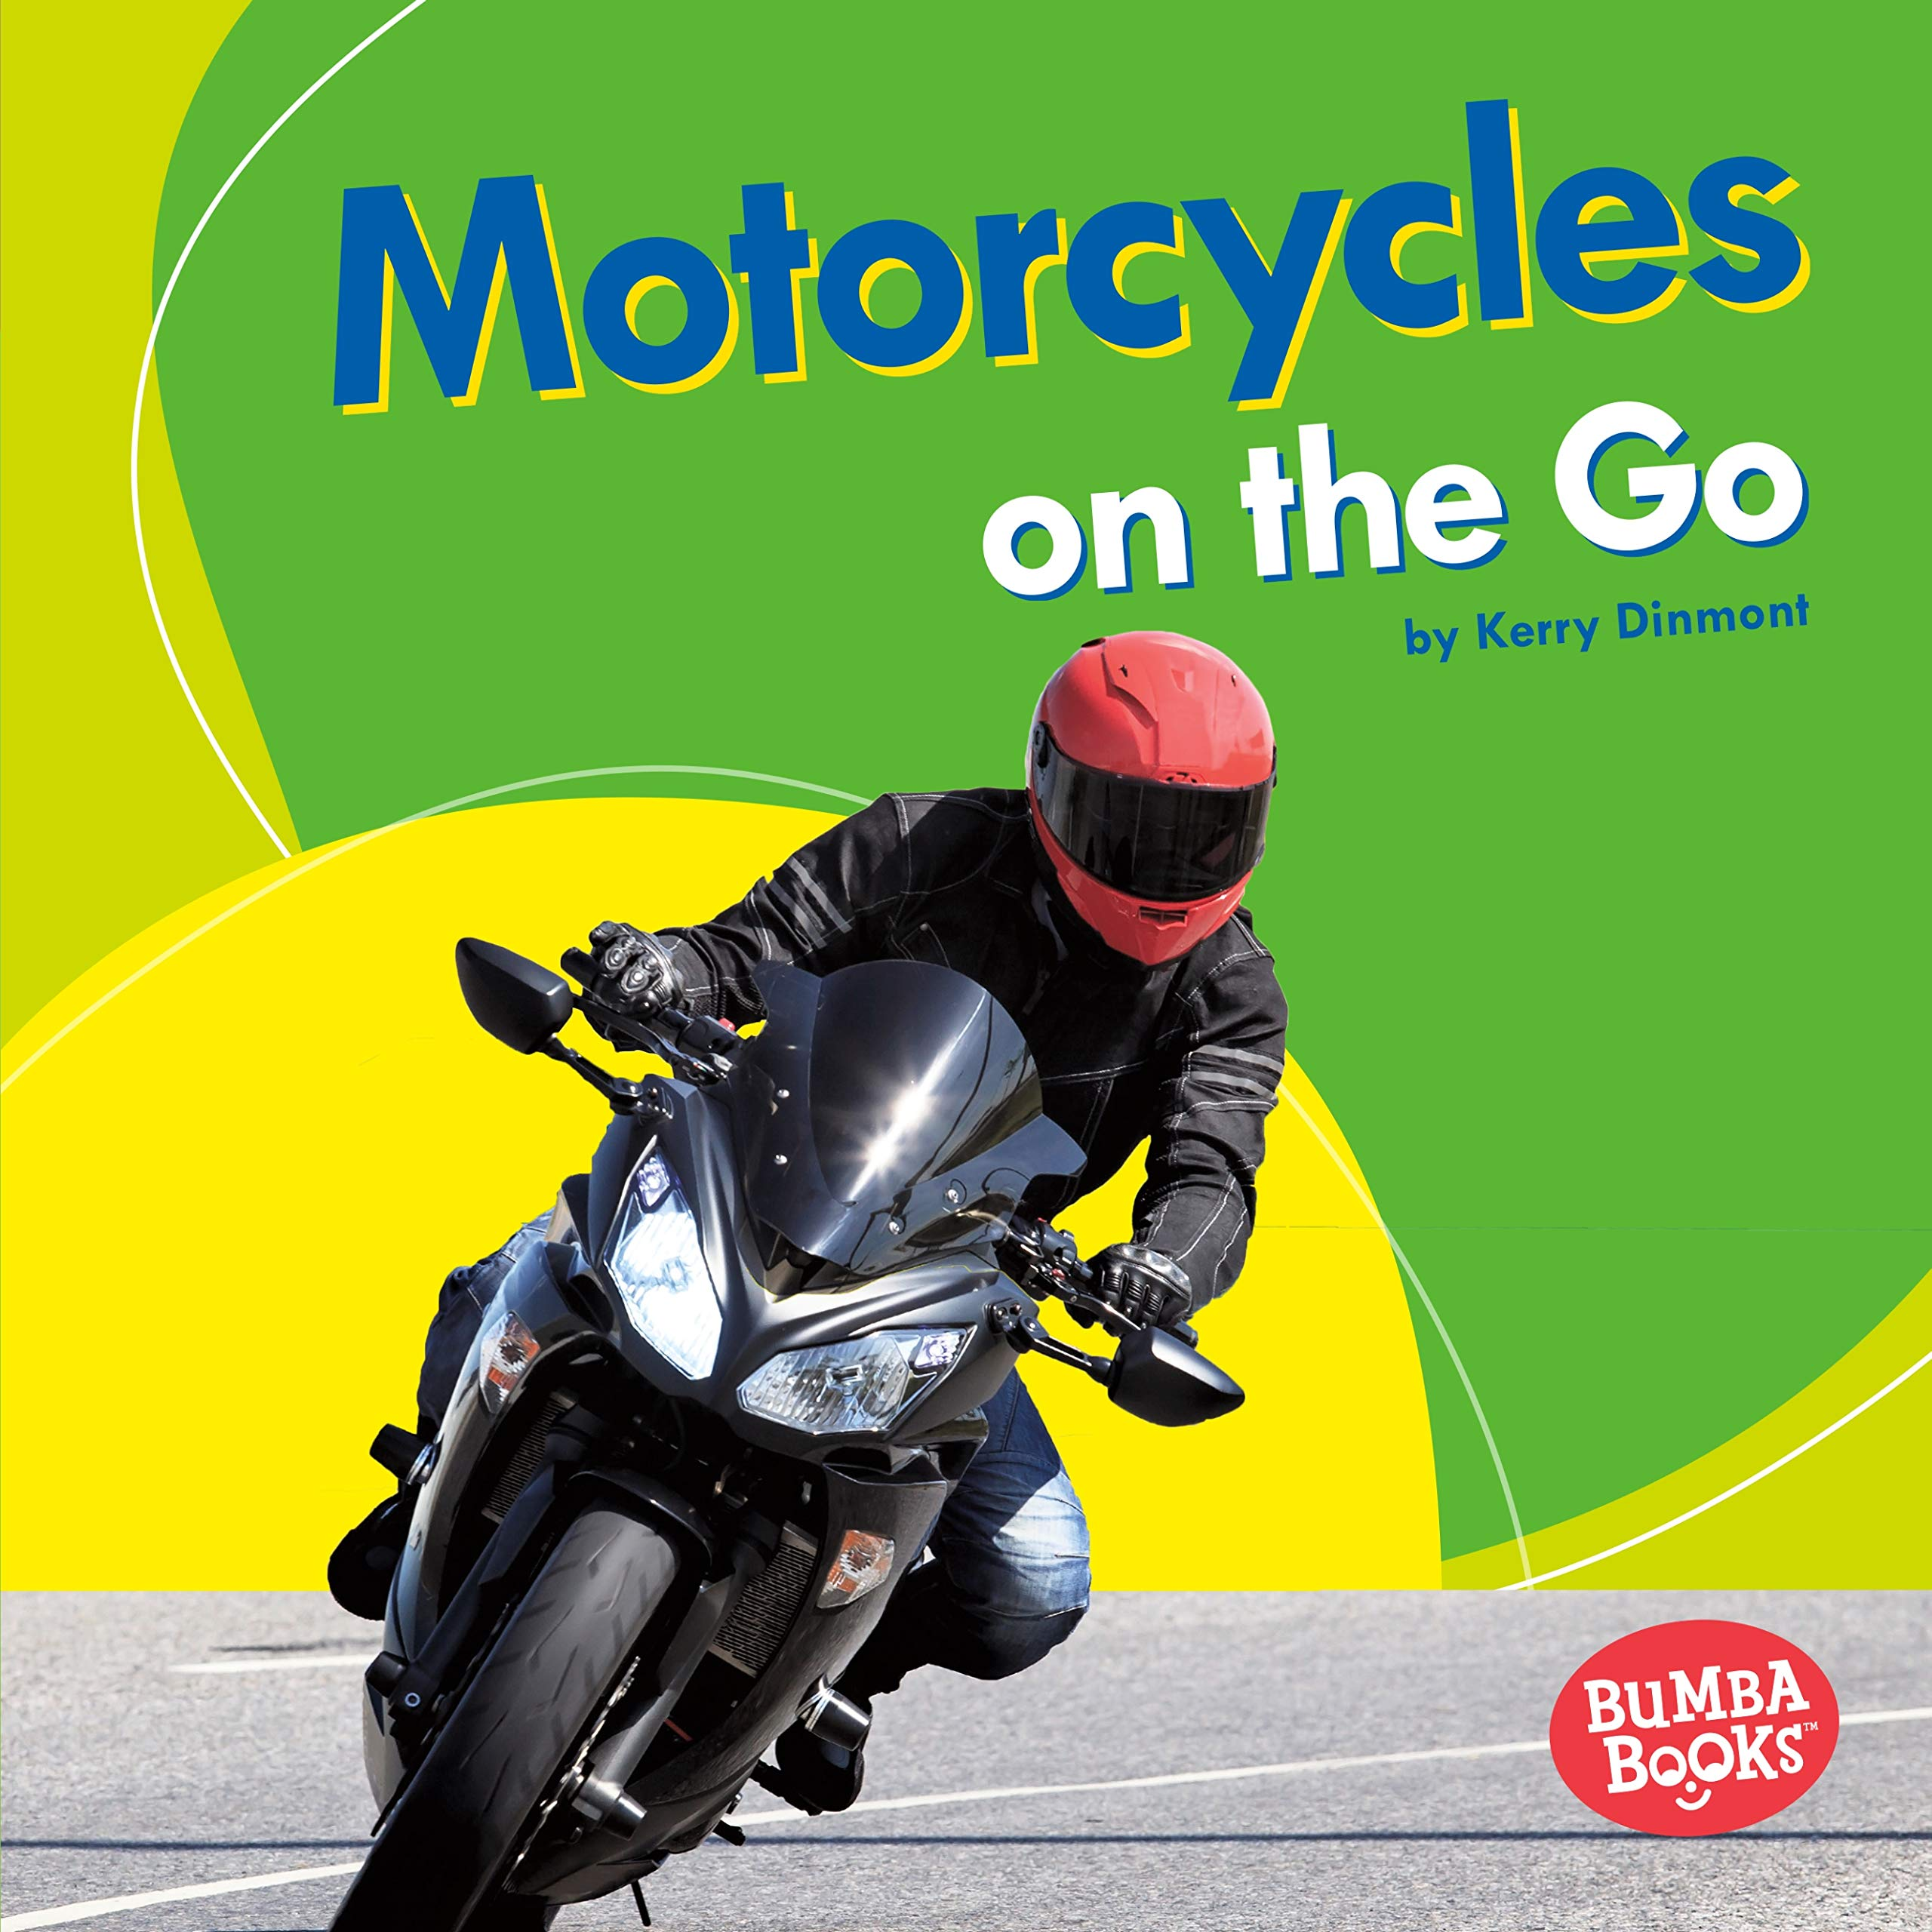 Motorcycles on the Go (Bumba Books Machines That Go) ebook